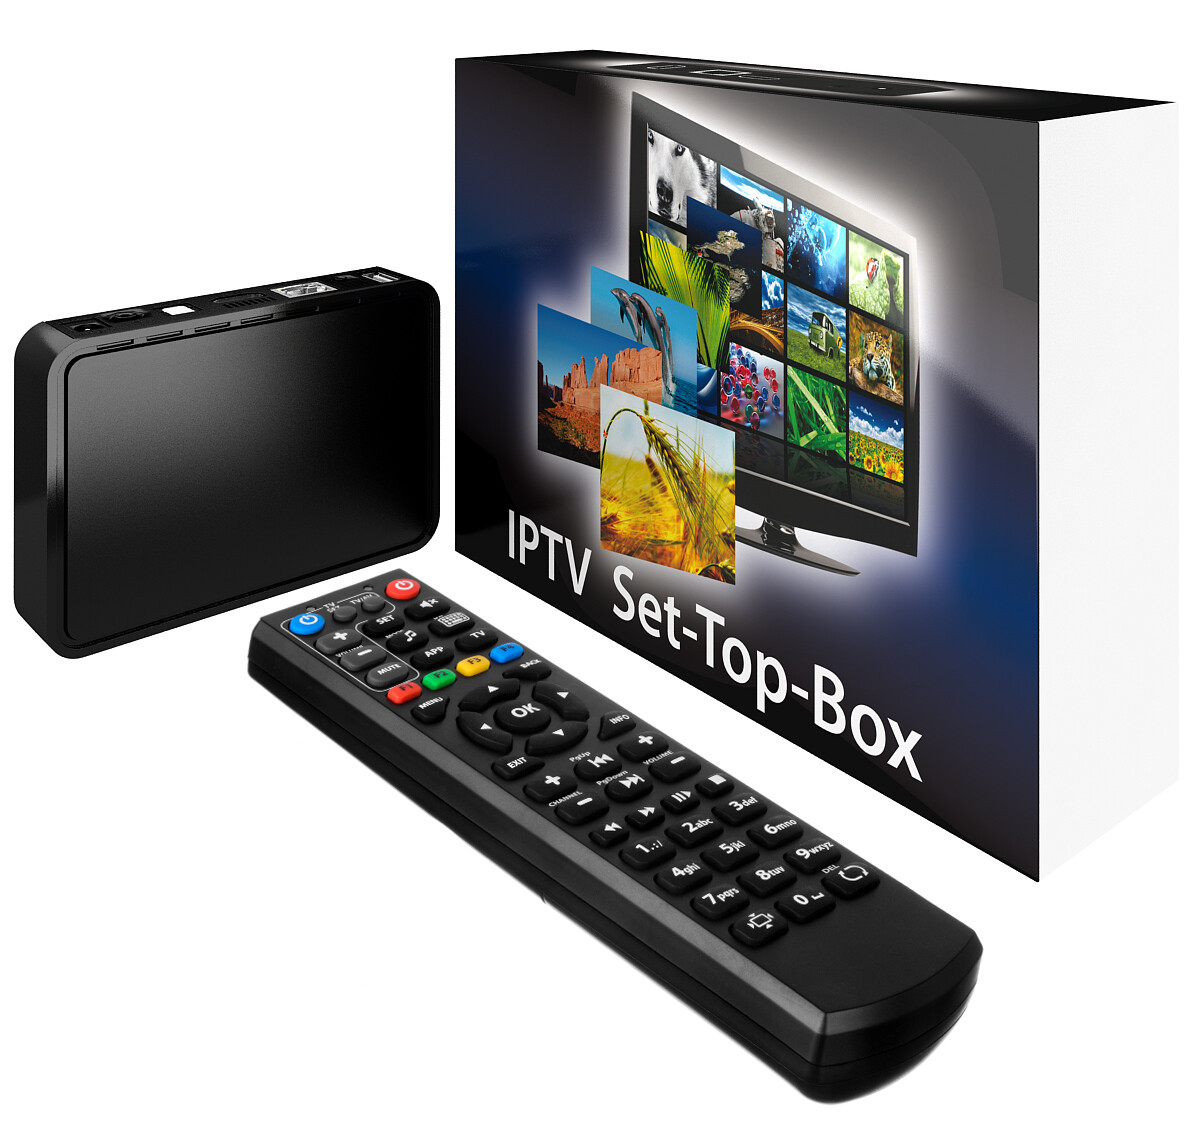 IPTV Set Top Box MAG 250